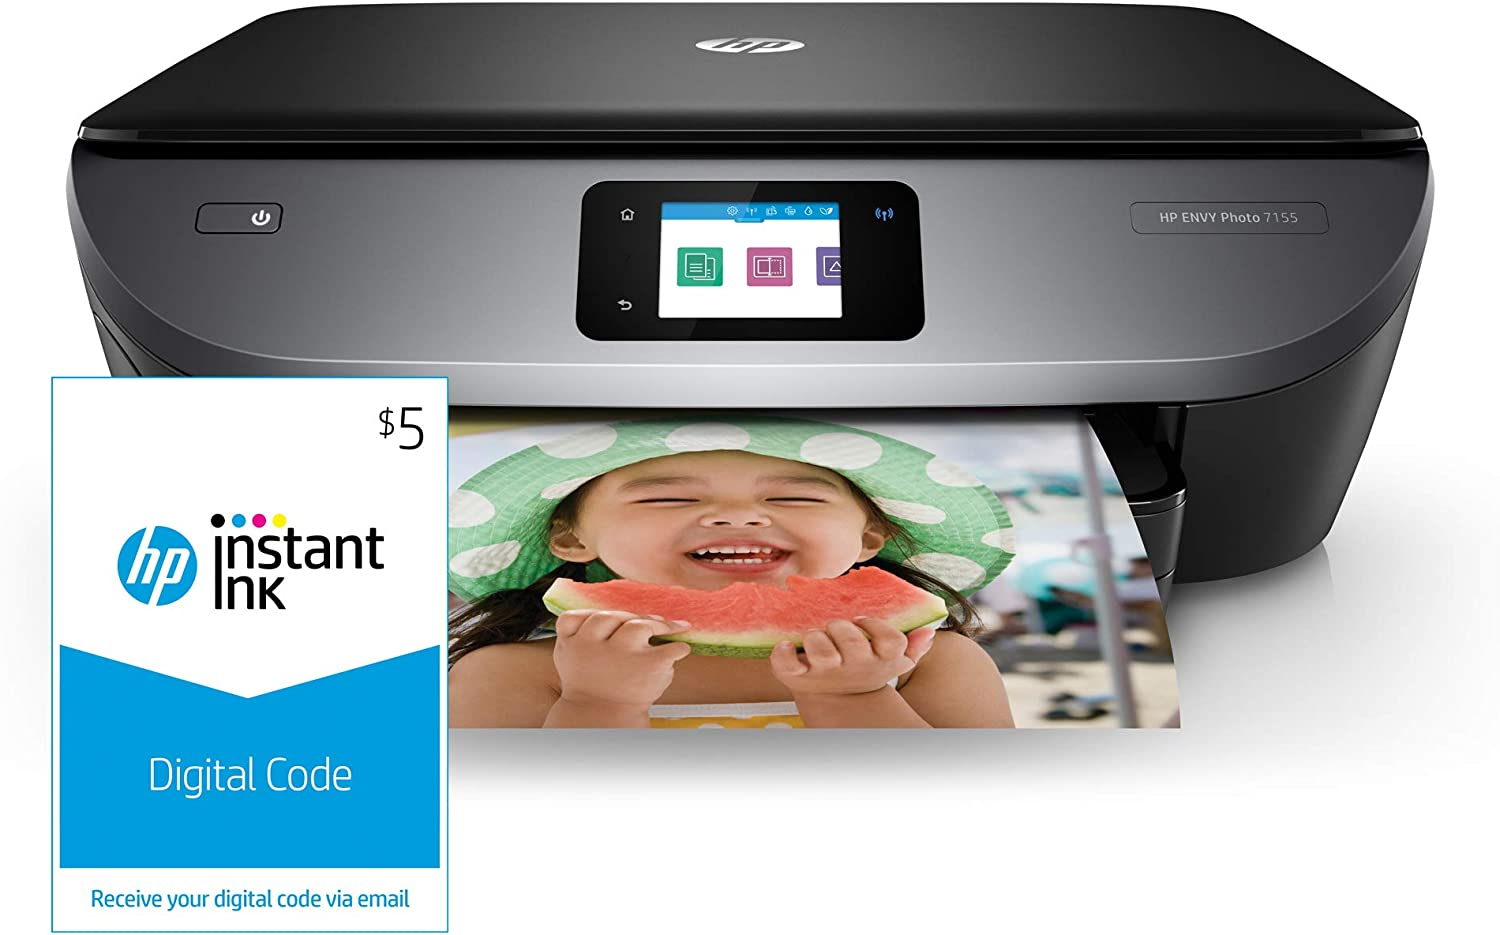 HP ENVY Photo 7155 All in One Photo Printer with Wireless Printing, HP Instant Ink & Amazon Dash Replenishment ready (K7G93A) and Instant Ink $5 Prepaid Code